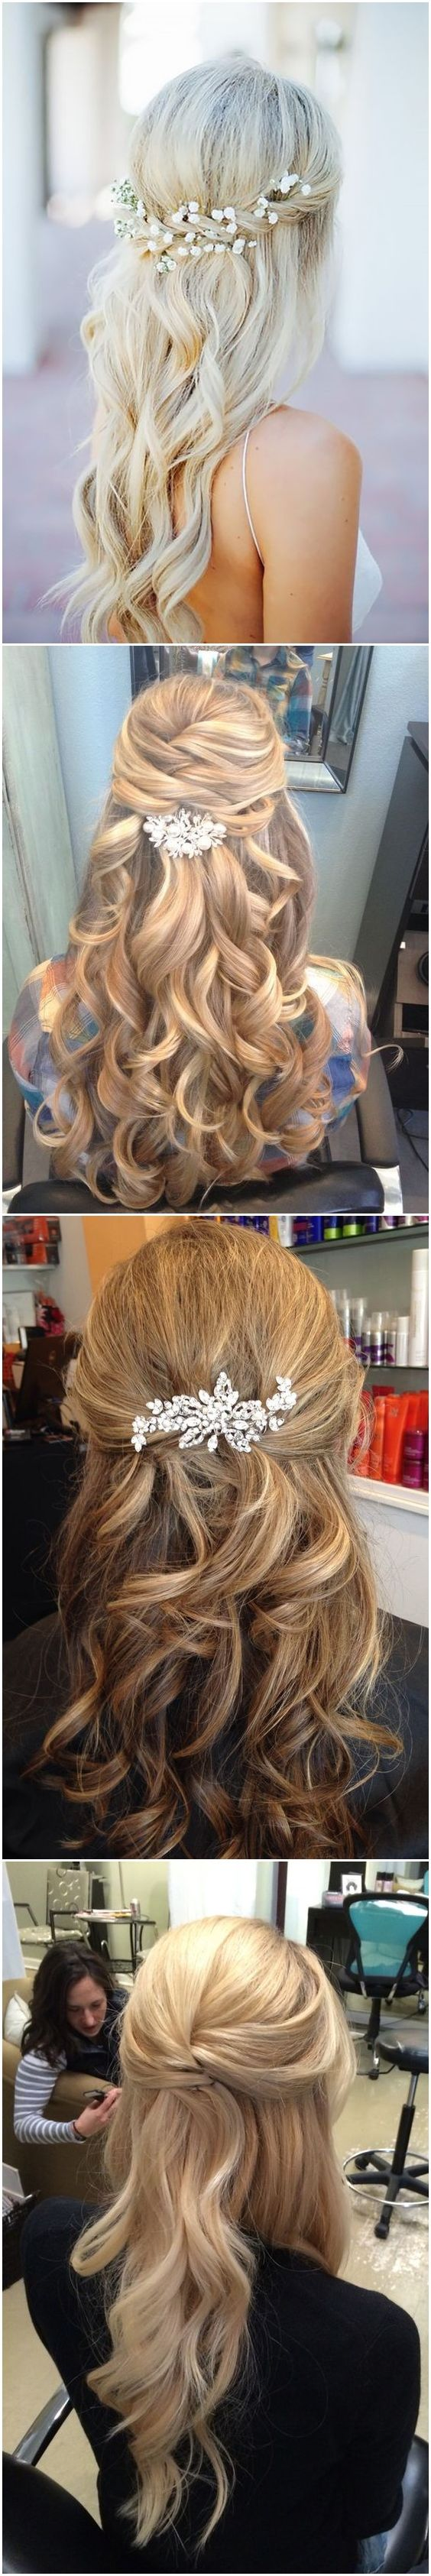 Hairstyles-Gorgeous Wedding Forٍ Chic Bride On Class World 9